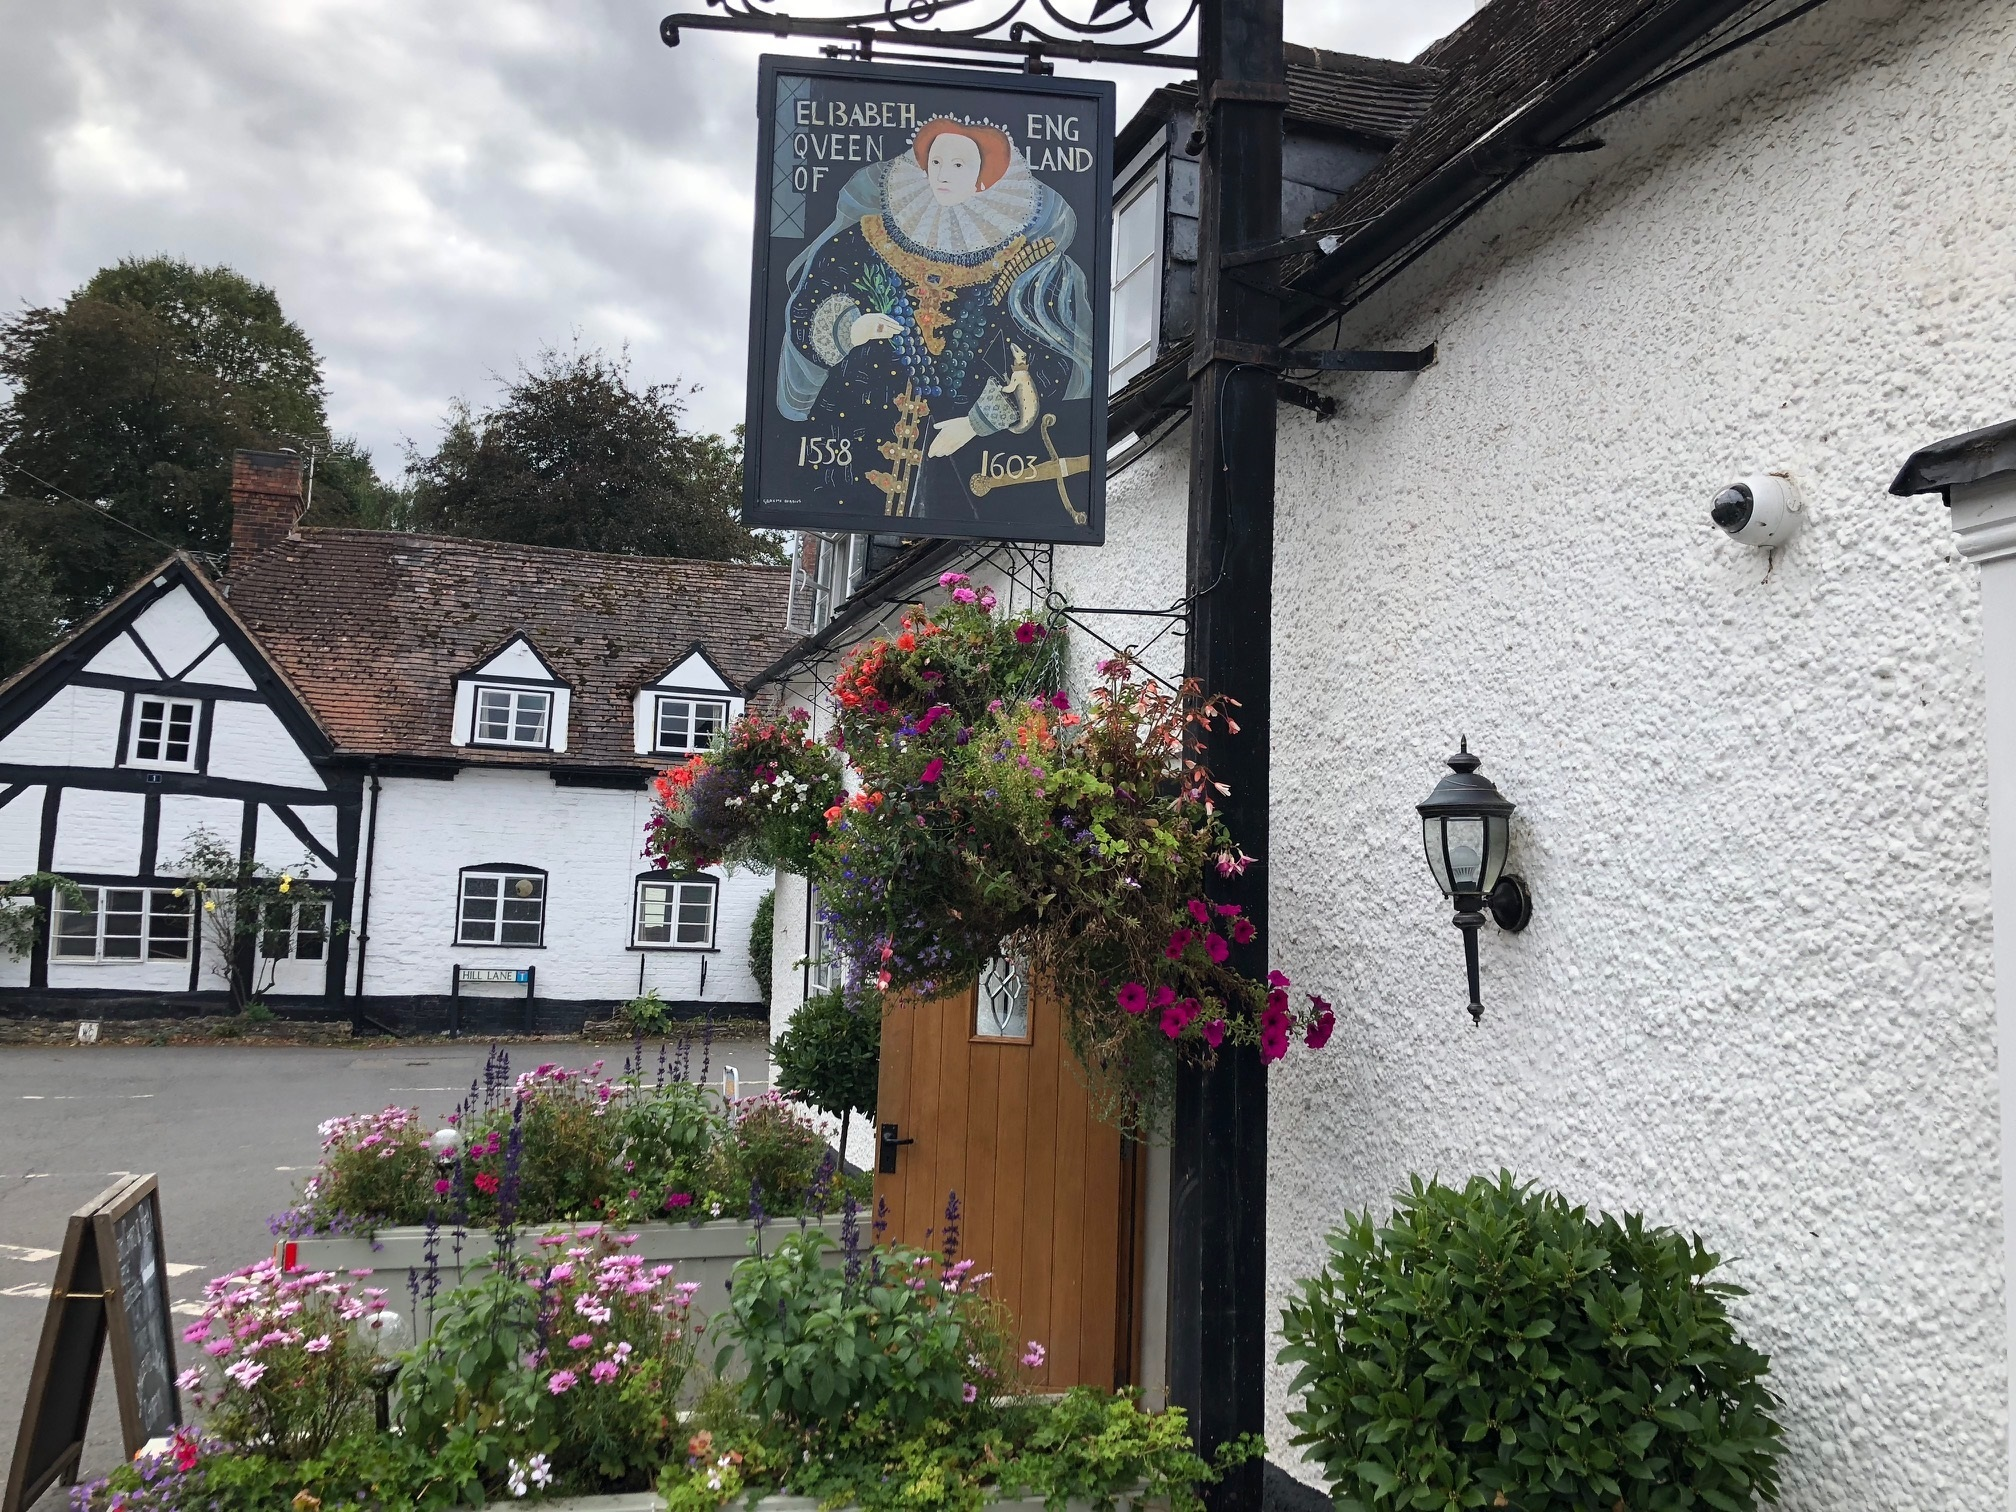 AWARD: The Queen Elizabeth Inn which has won a prestigious award